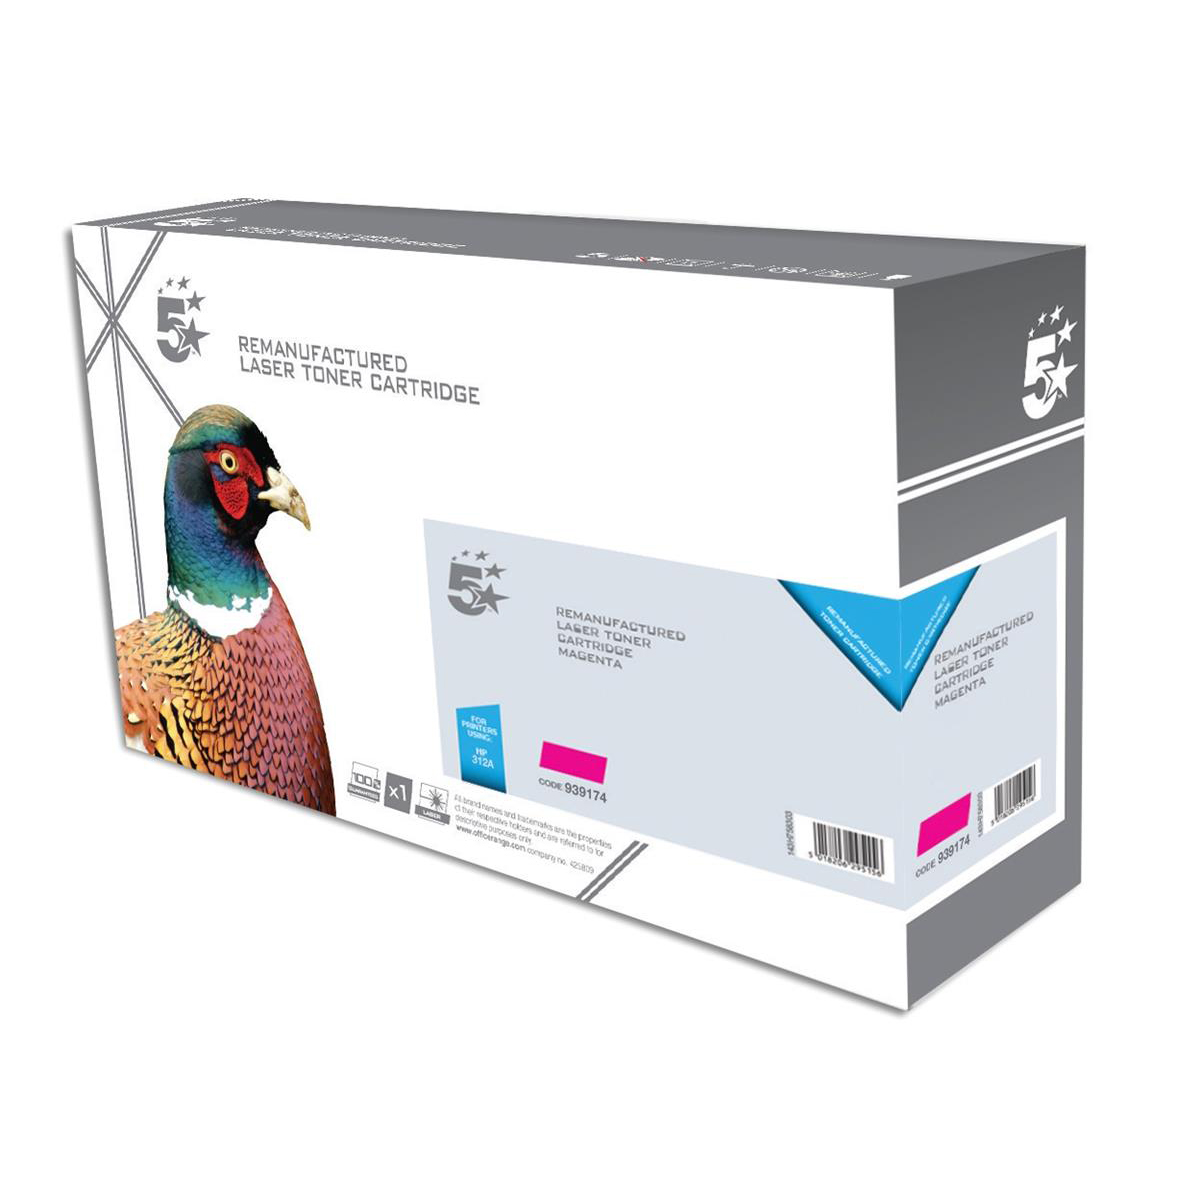 5 Star Office Remanufactured Laser Toner Cartridge Page Life 2700pp Magenta [HP 312A CF383A Alternative]